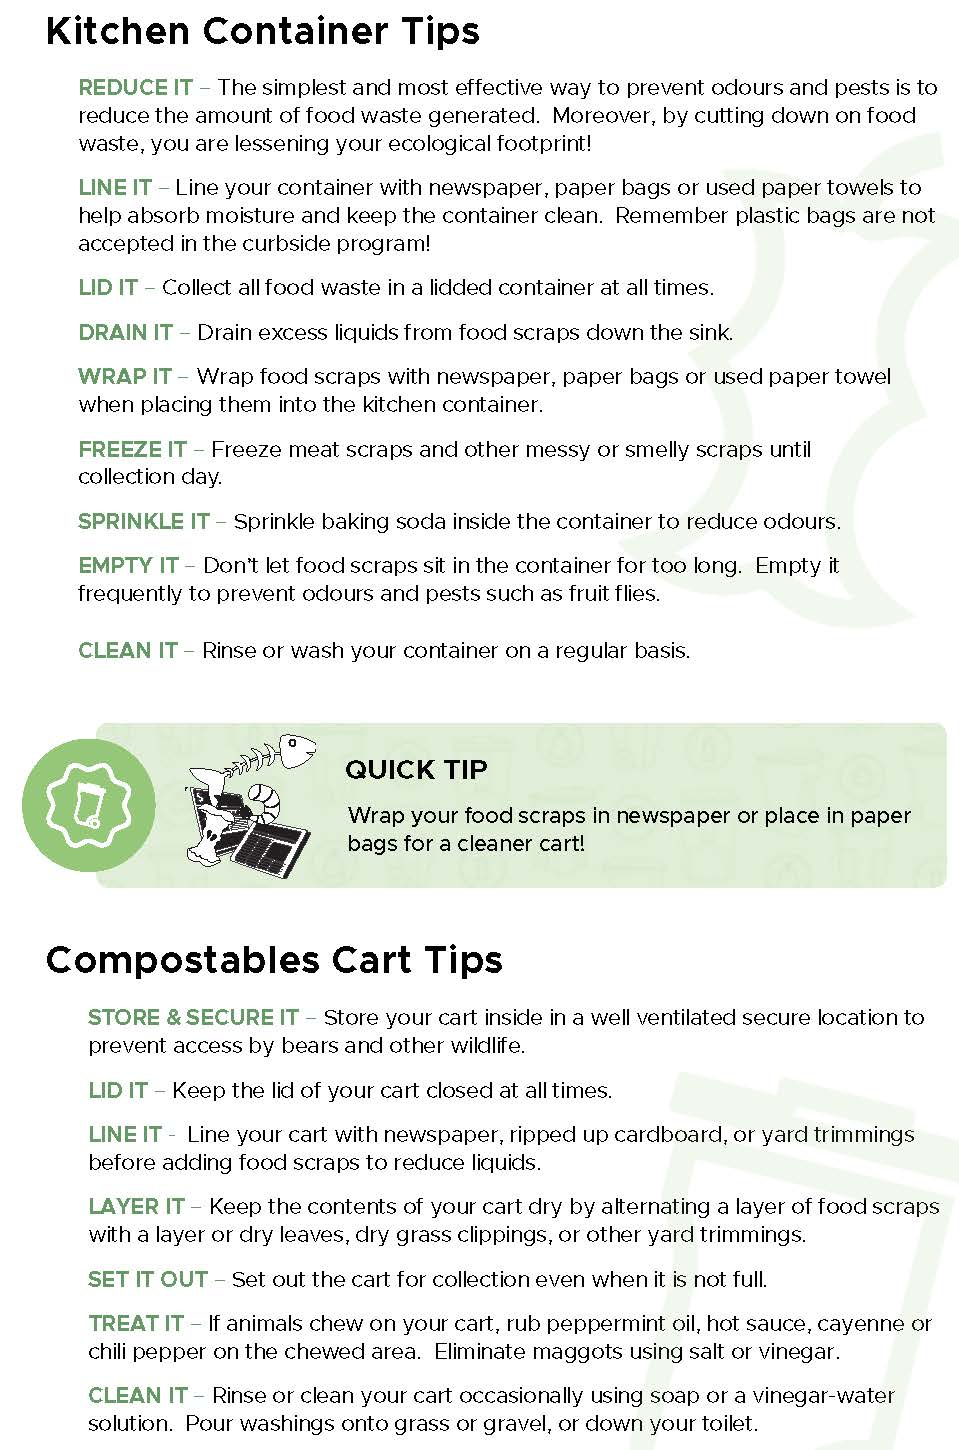 Kitchen Container and Compost Cart Tips